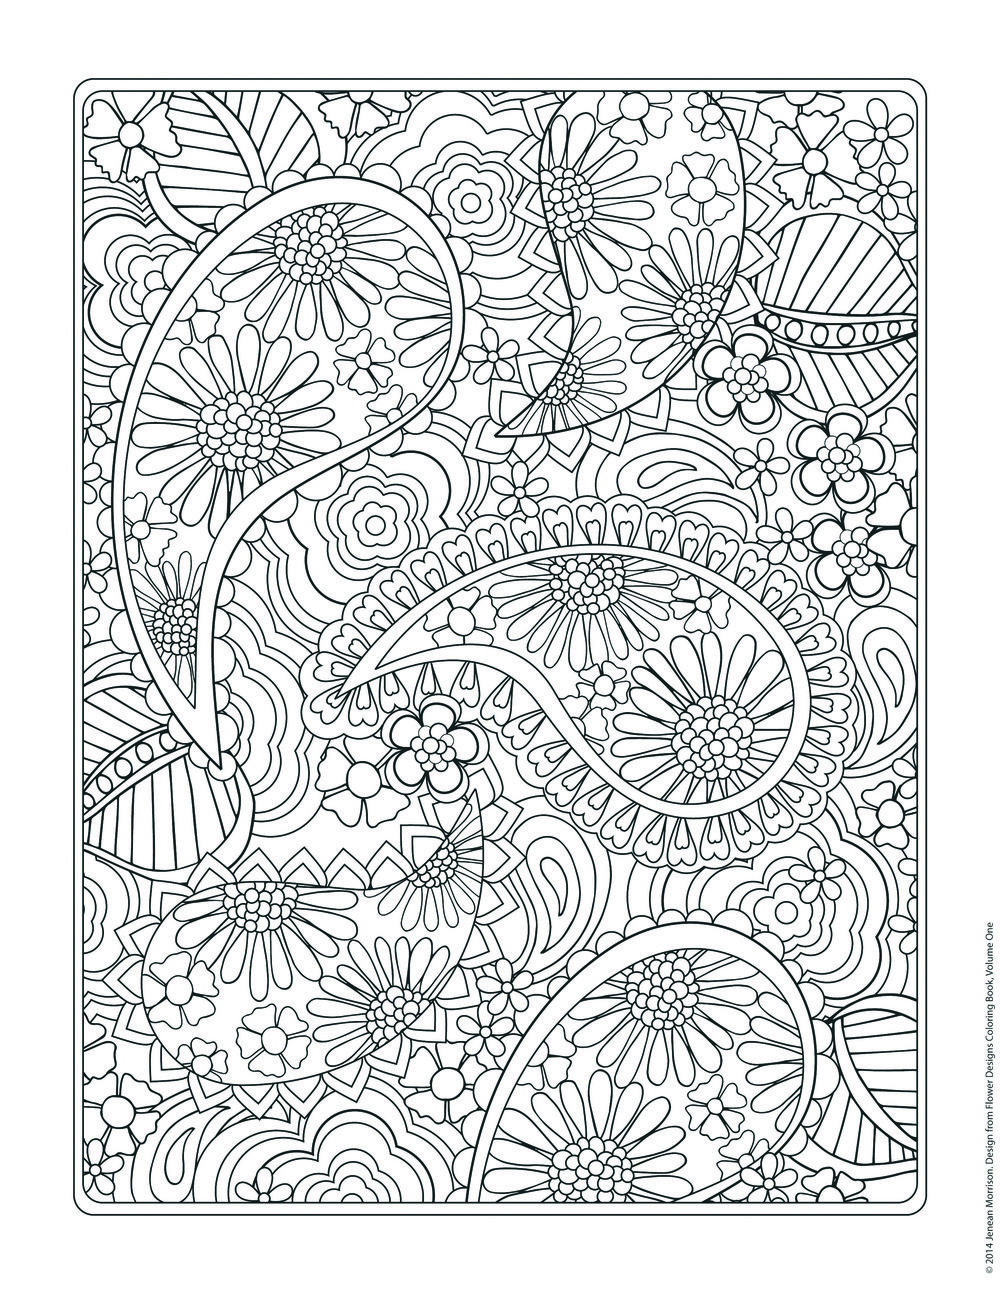 find this pin and more on coloring by velvethell